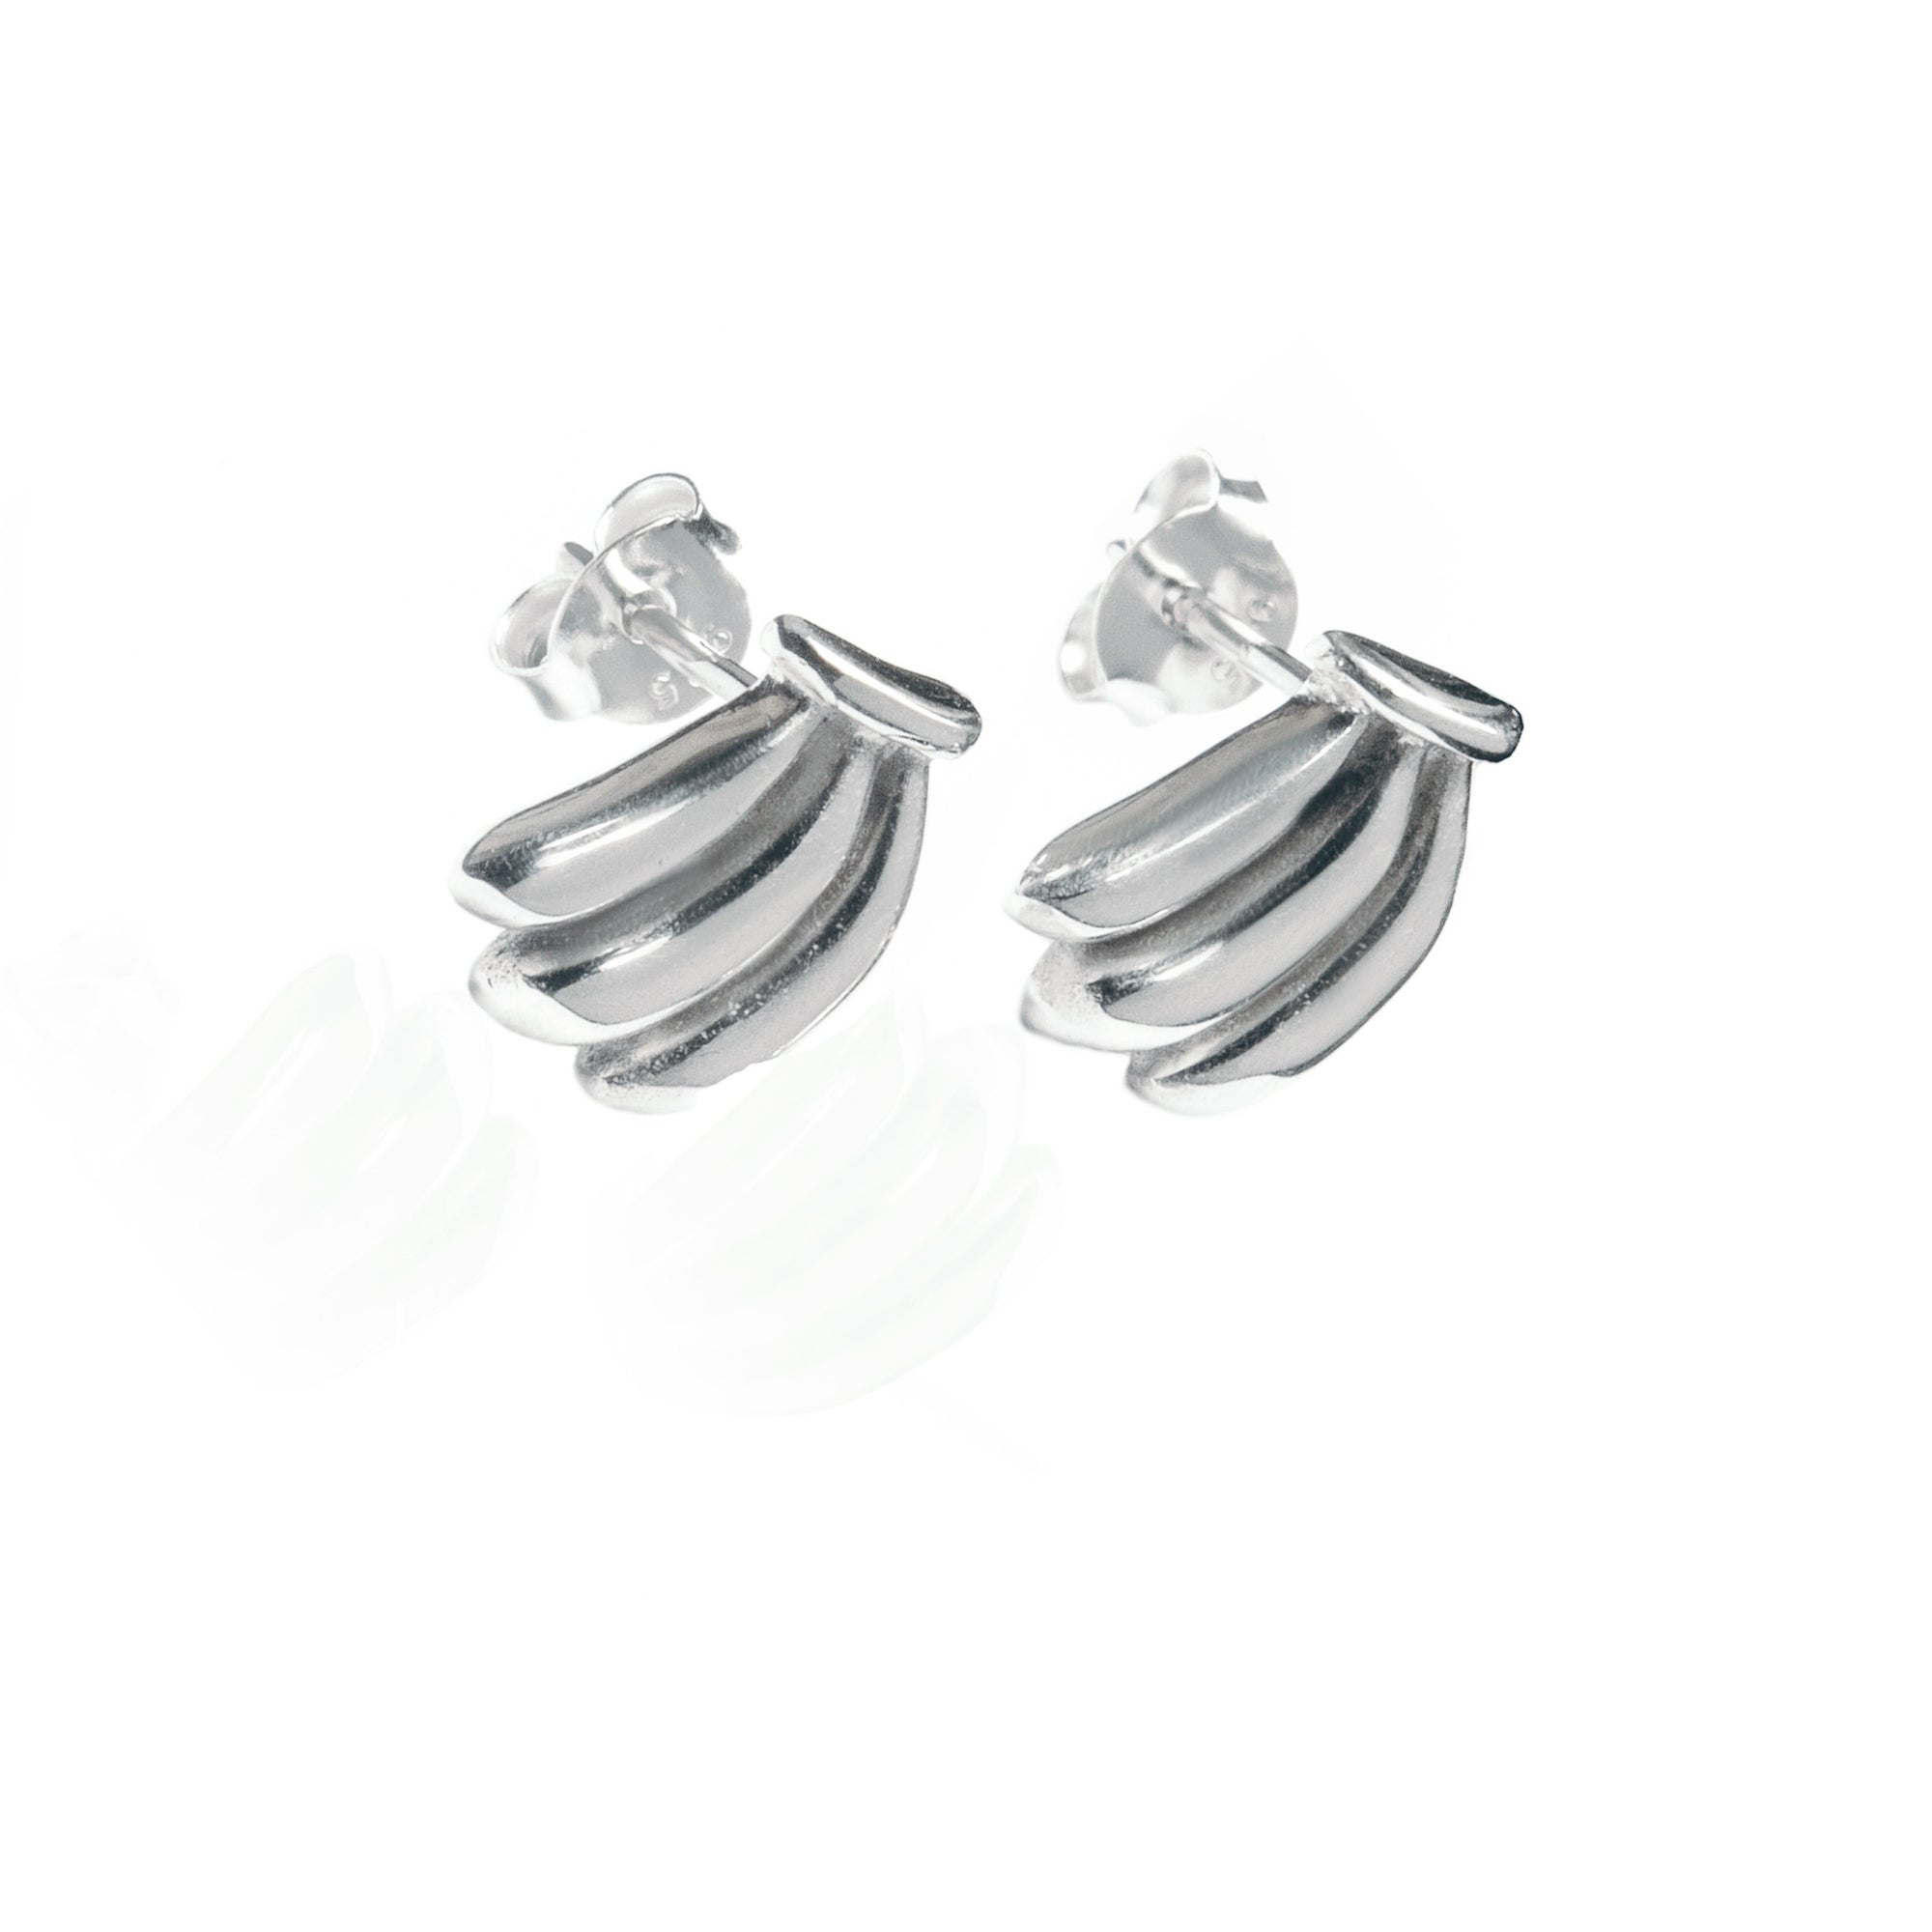 La Luna Rose Jewellery - You Drive me Bananas Earrings - Silver